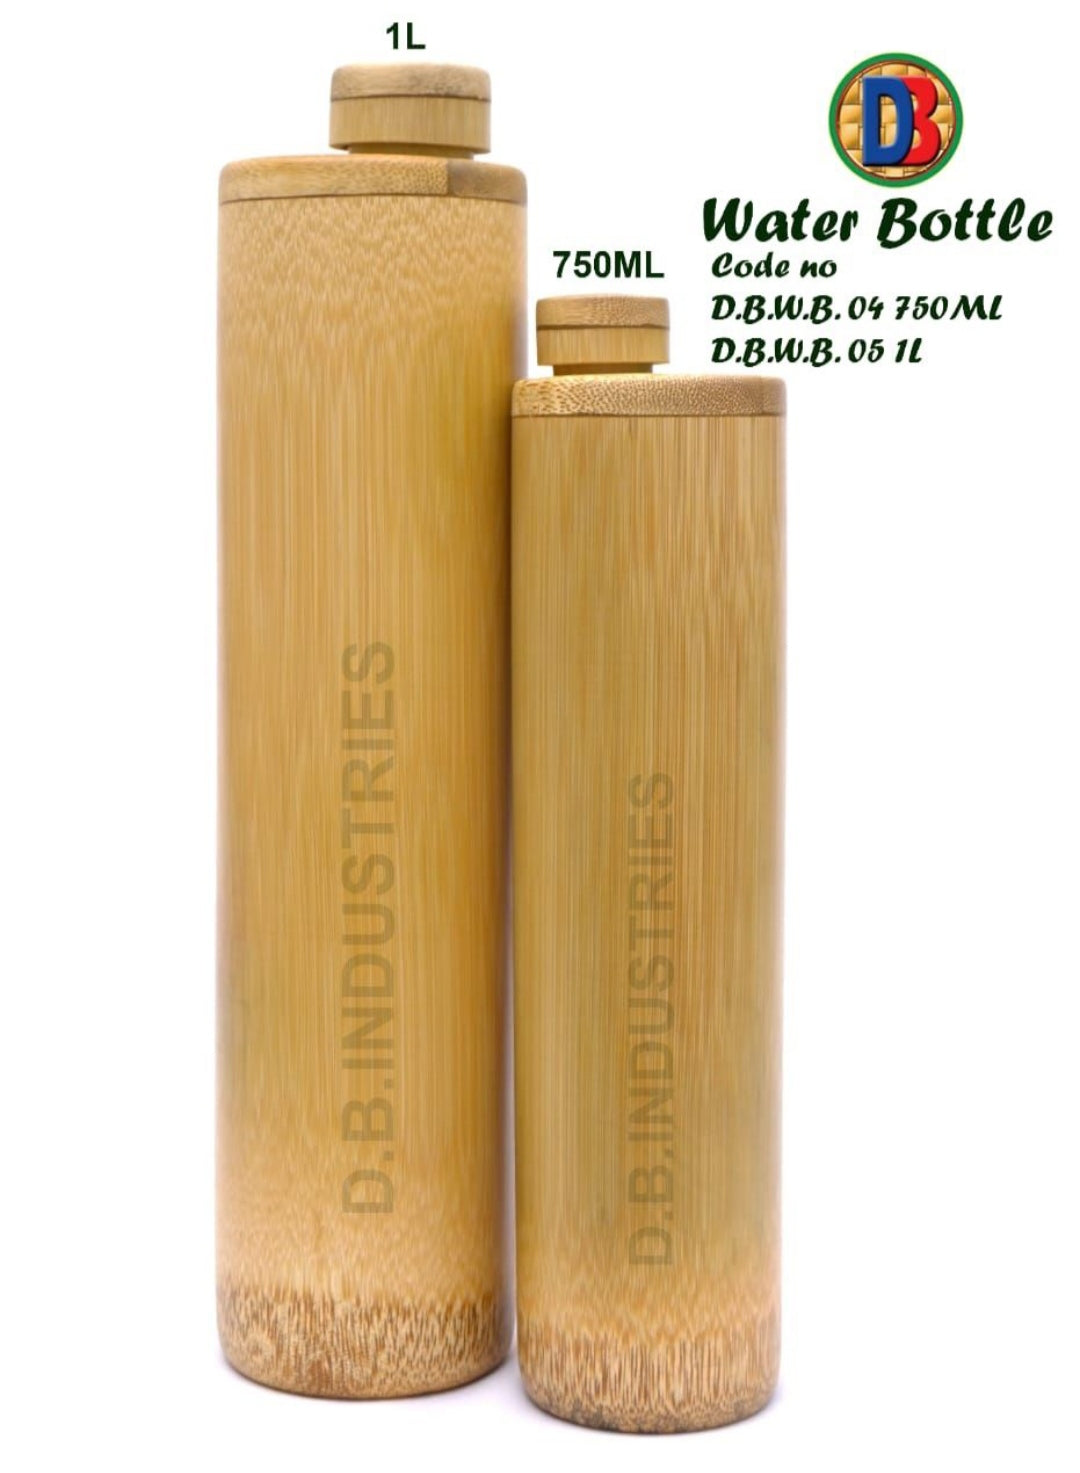 Bamboo Water Bottle - 1 Litre